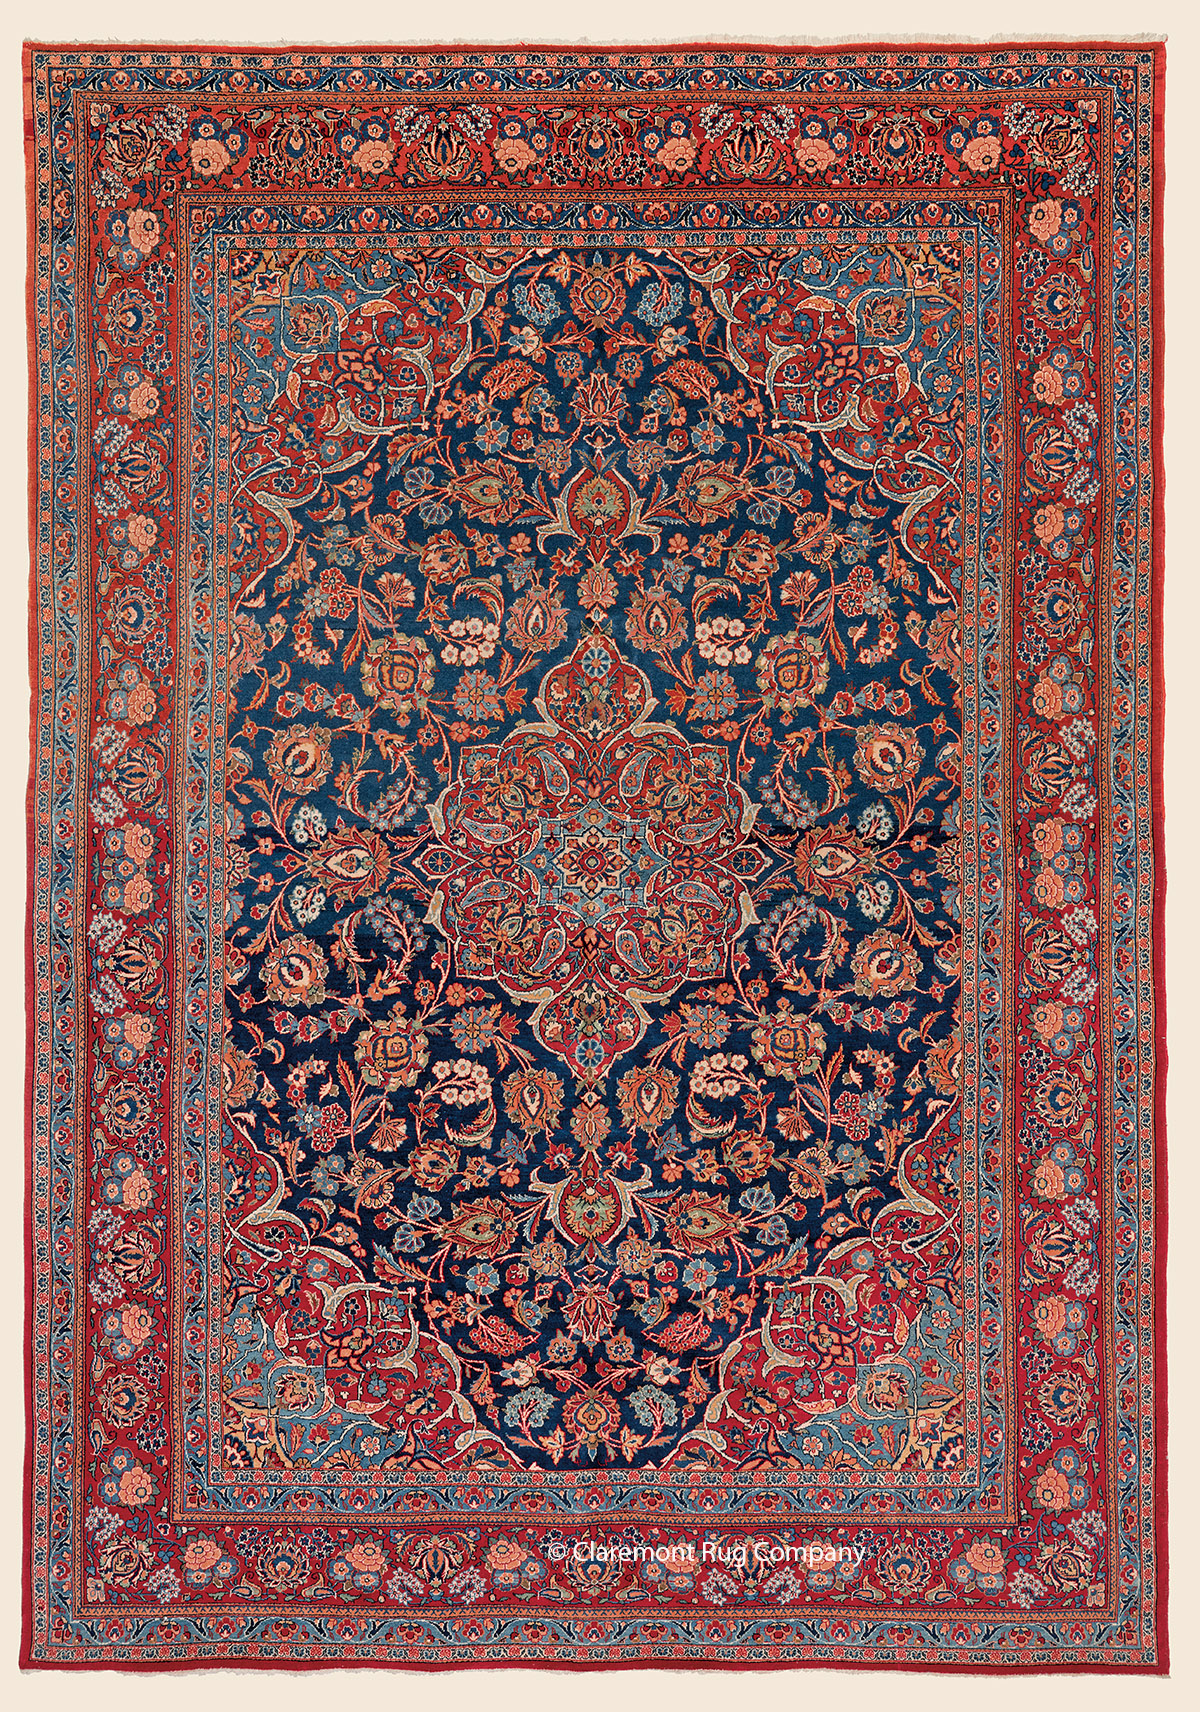 Antique Central Persian Kashan rug 7ft x 10ft with floral ...